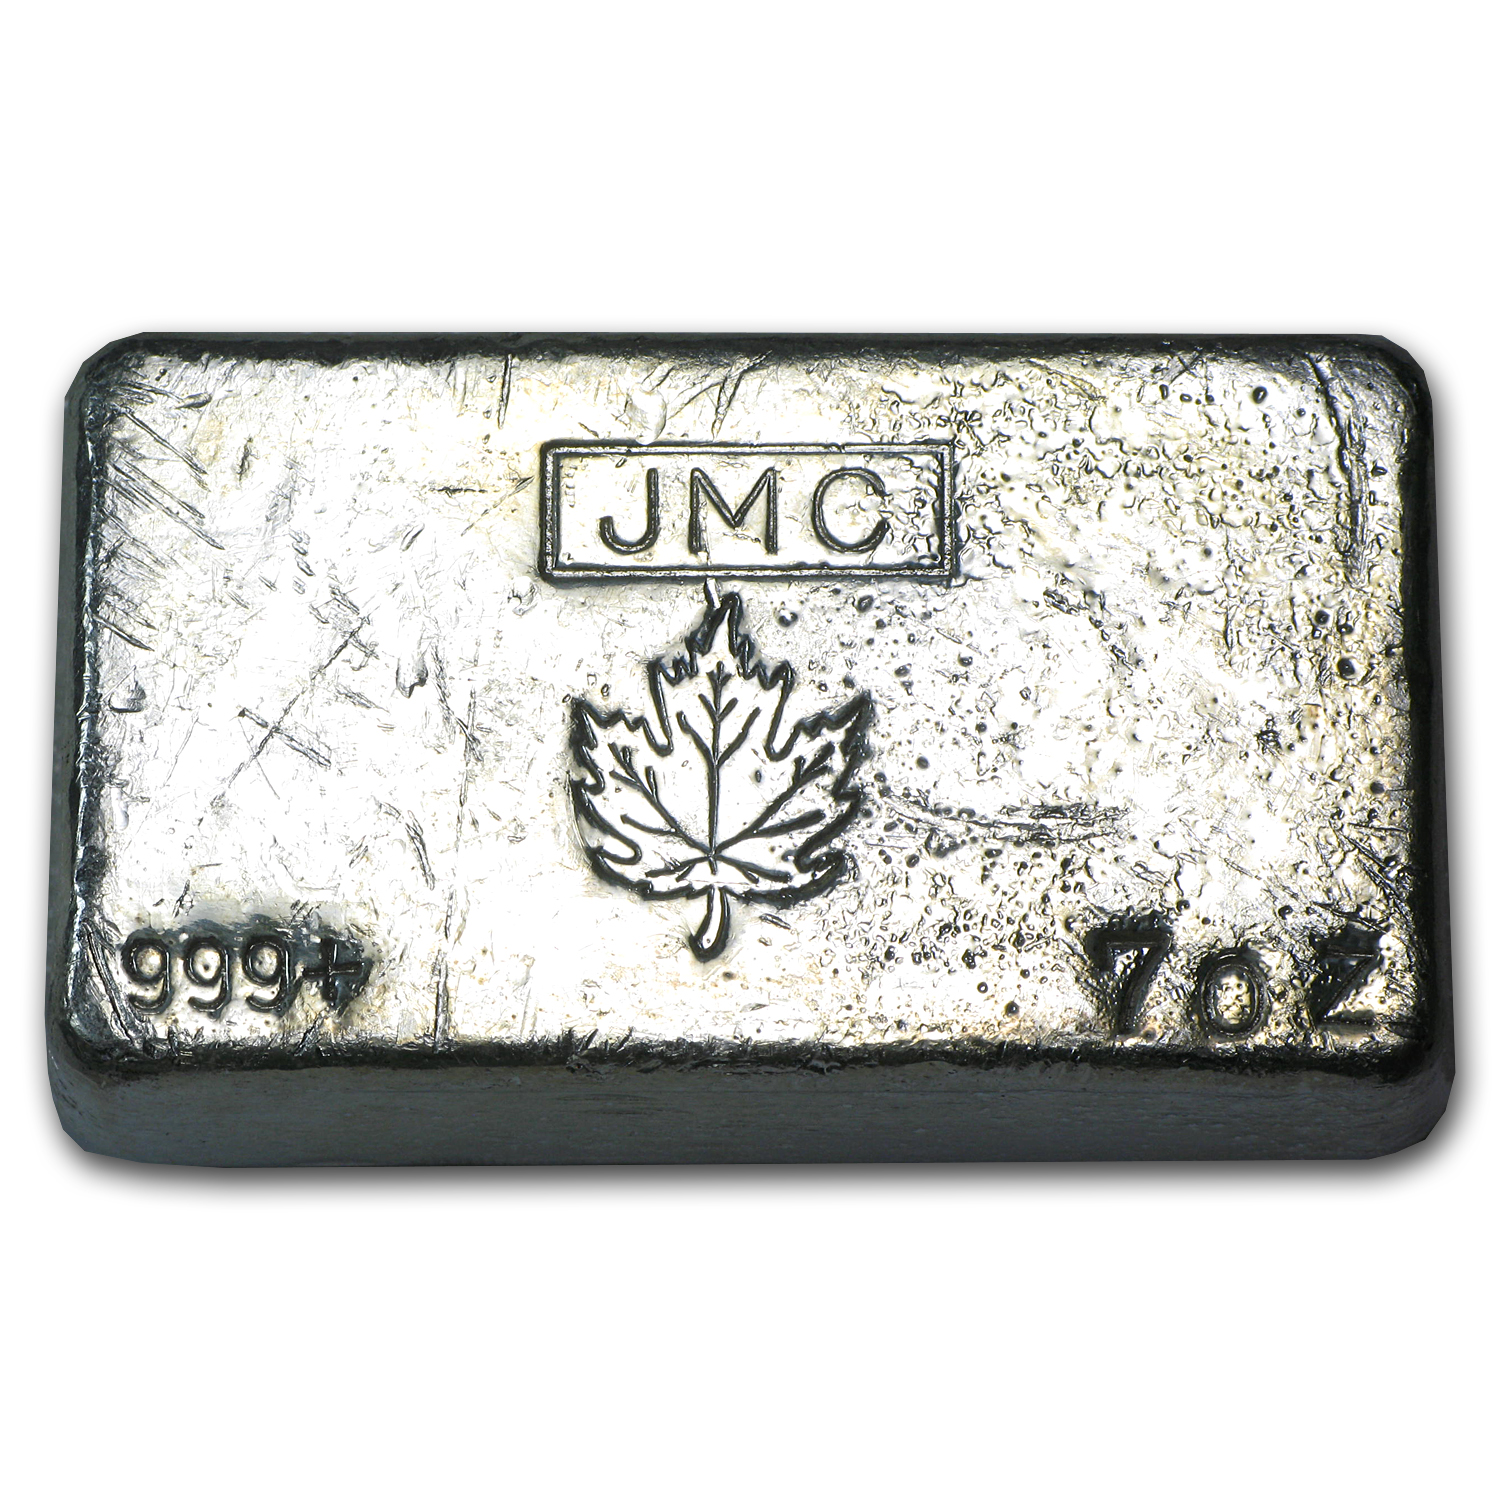 7 oz Silver Bar - Johnson Matthey Canada (Poured, Maple Leaf)